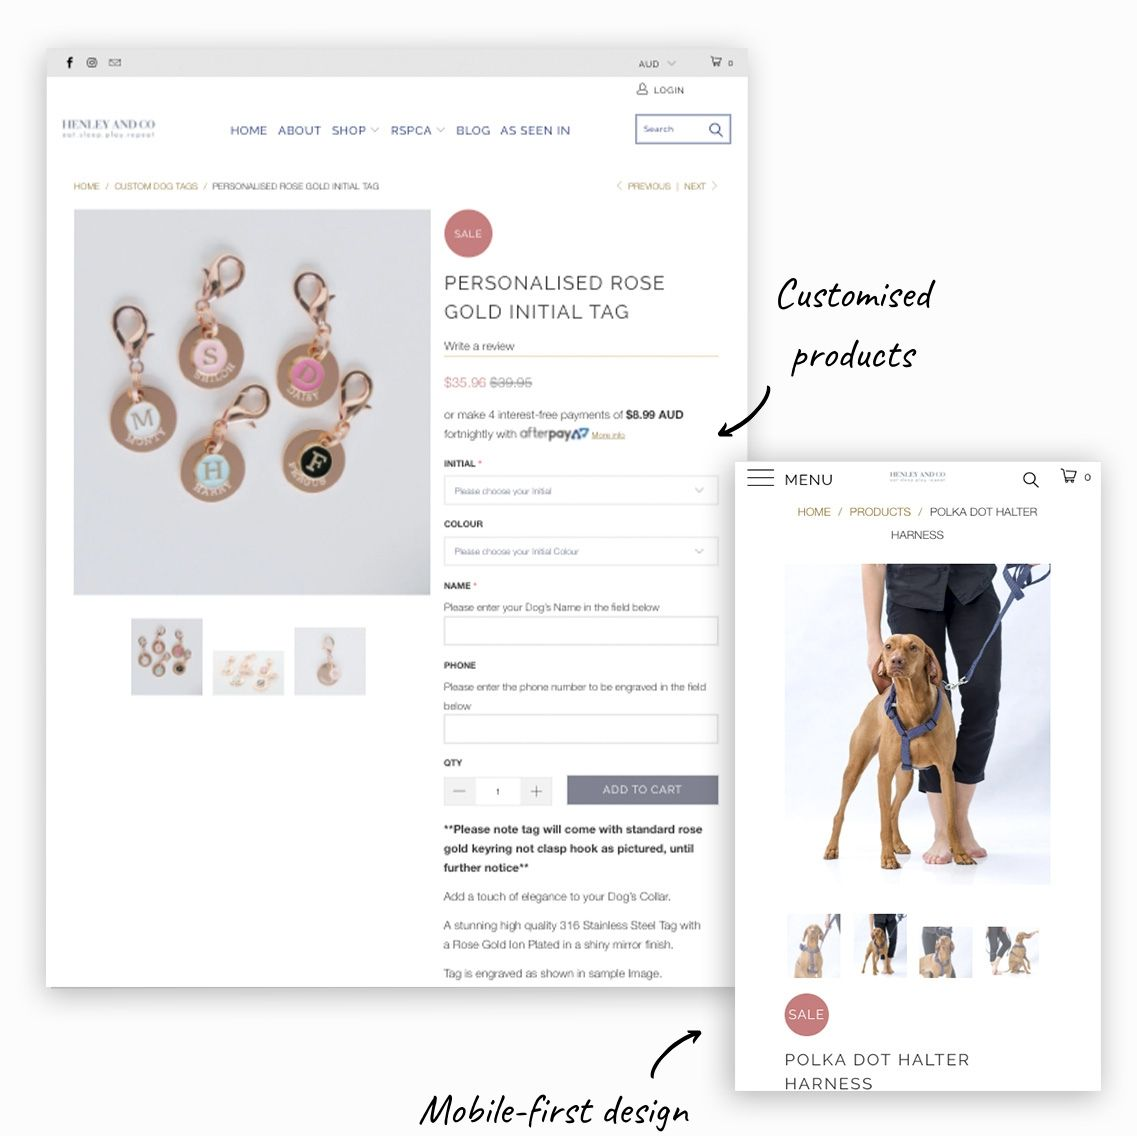 Examples of redesigned customised products feature and mobile-first design for Henley and co